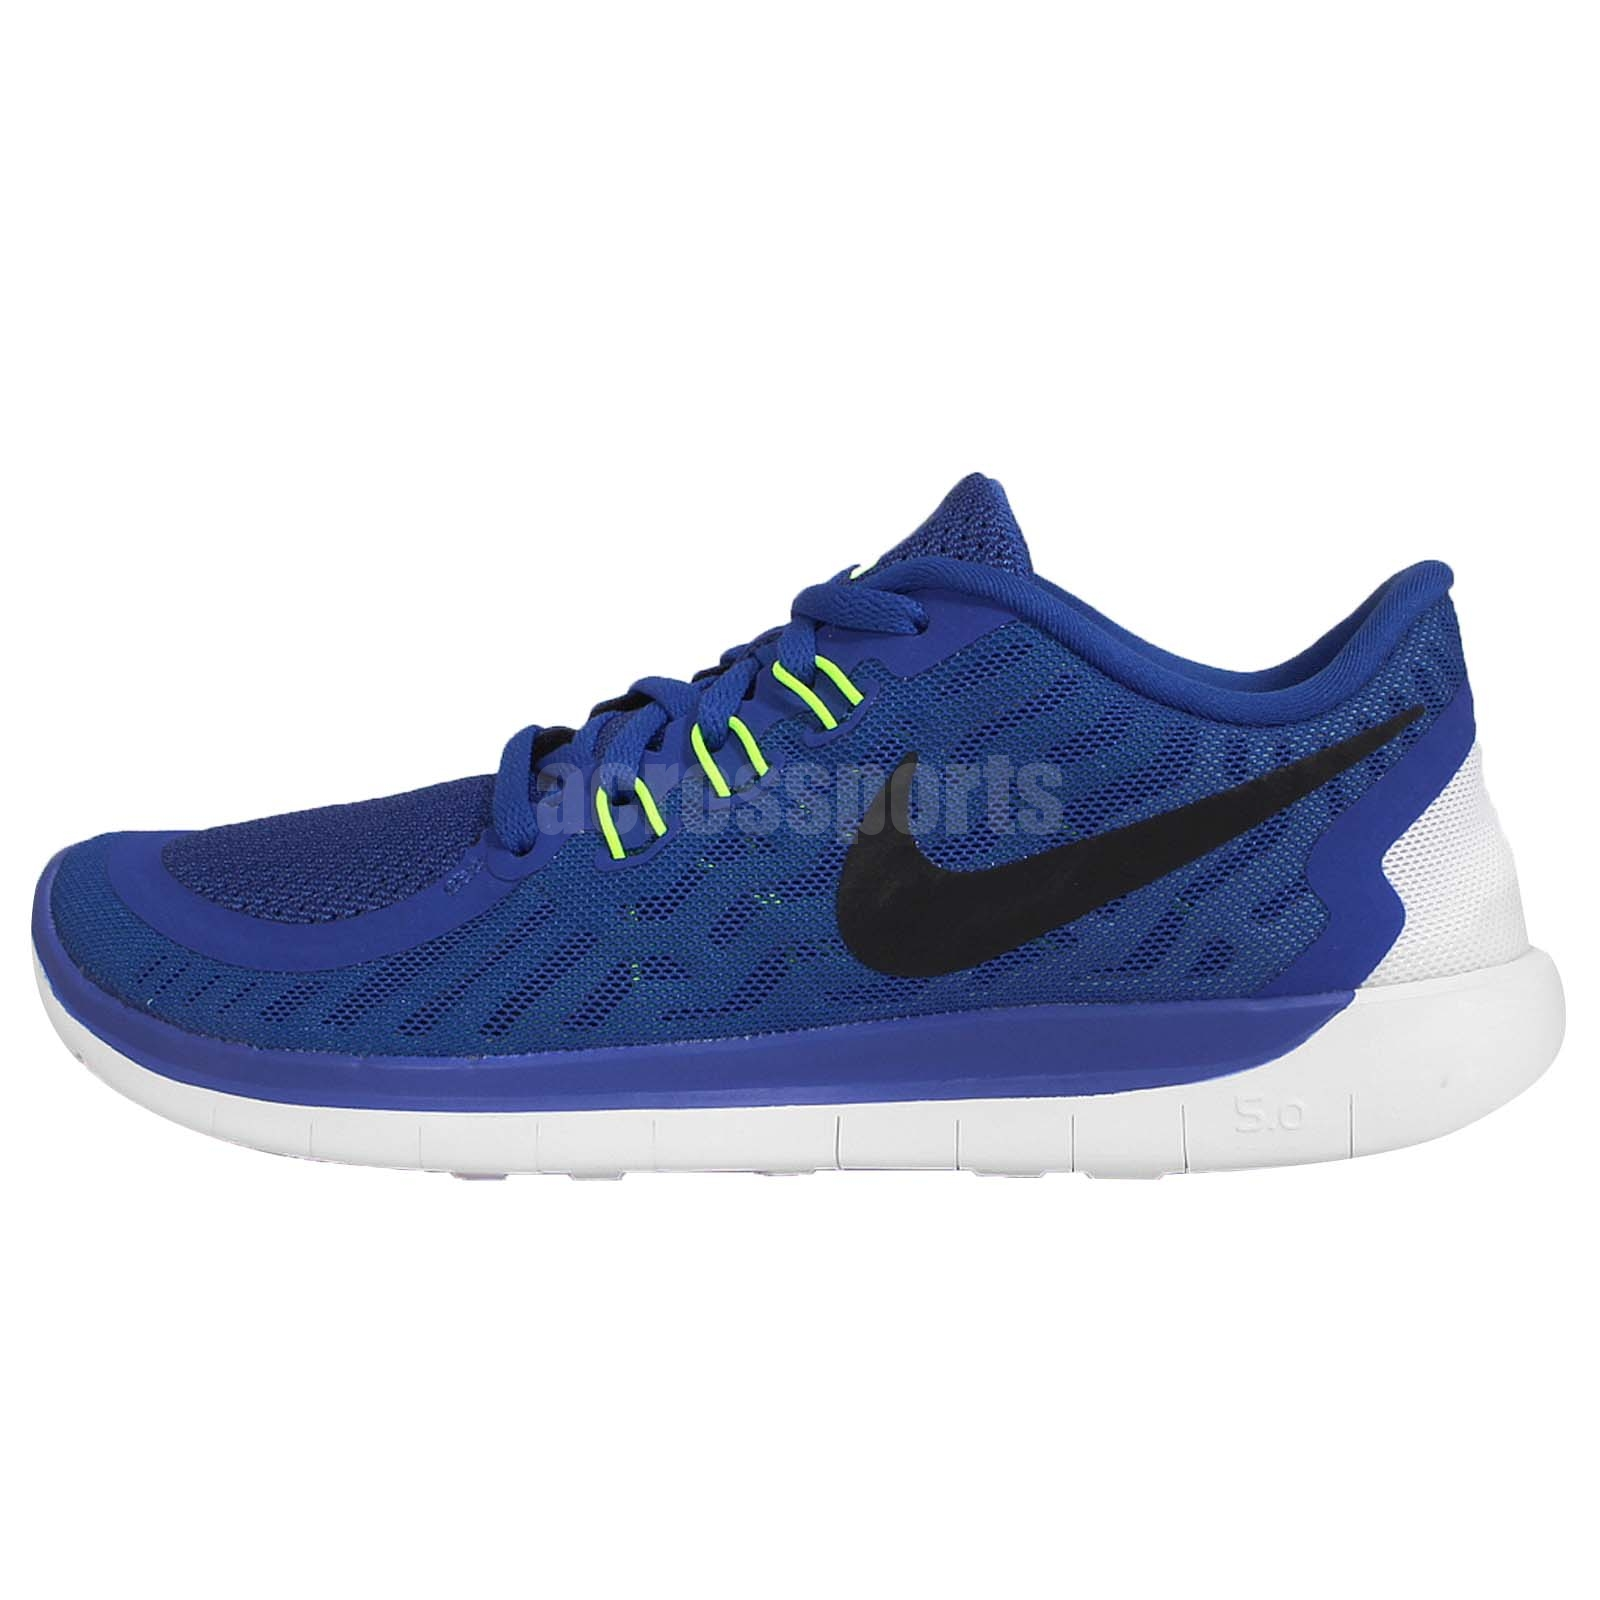 Nike Shoes For Boys Size  Run Color